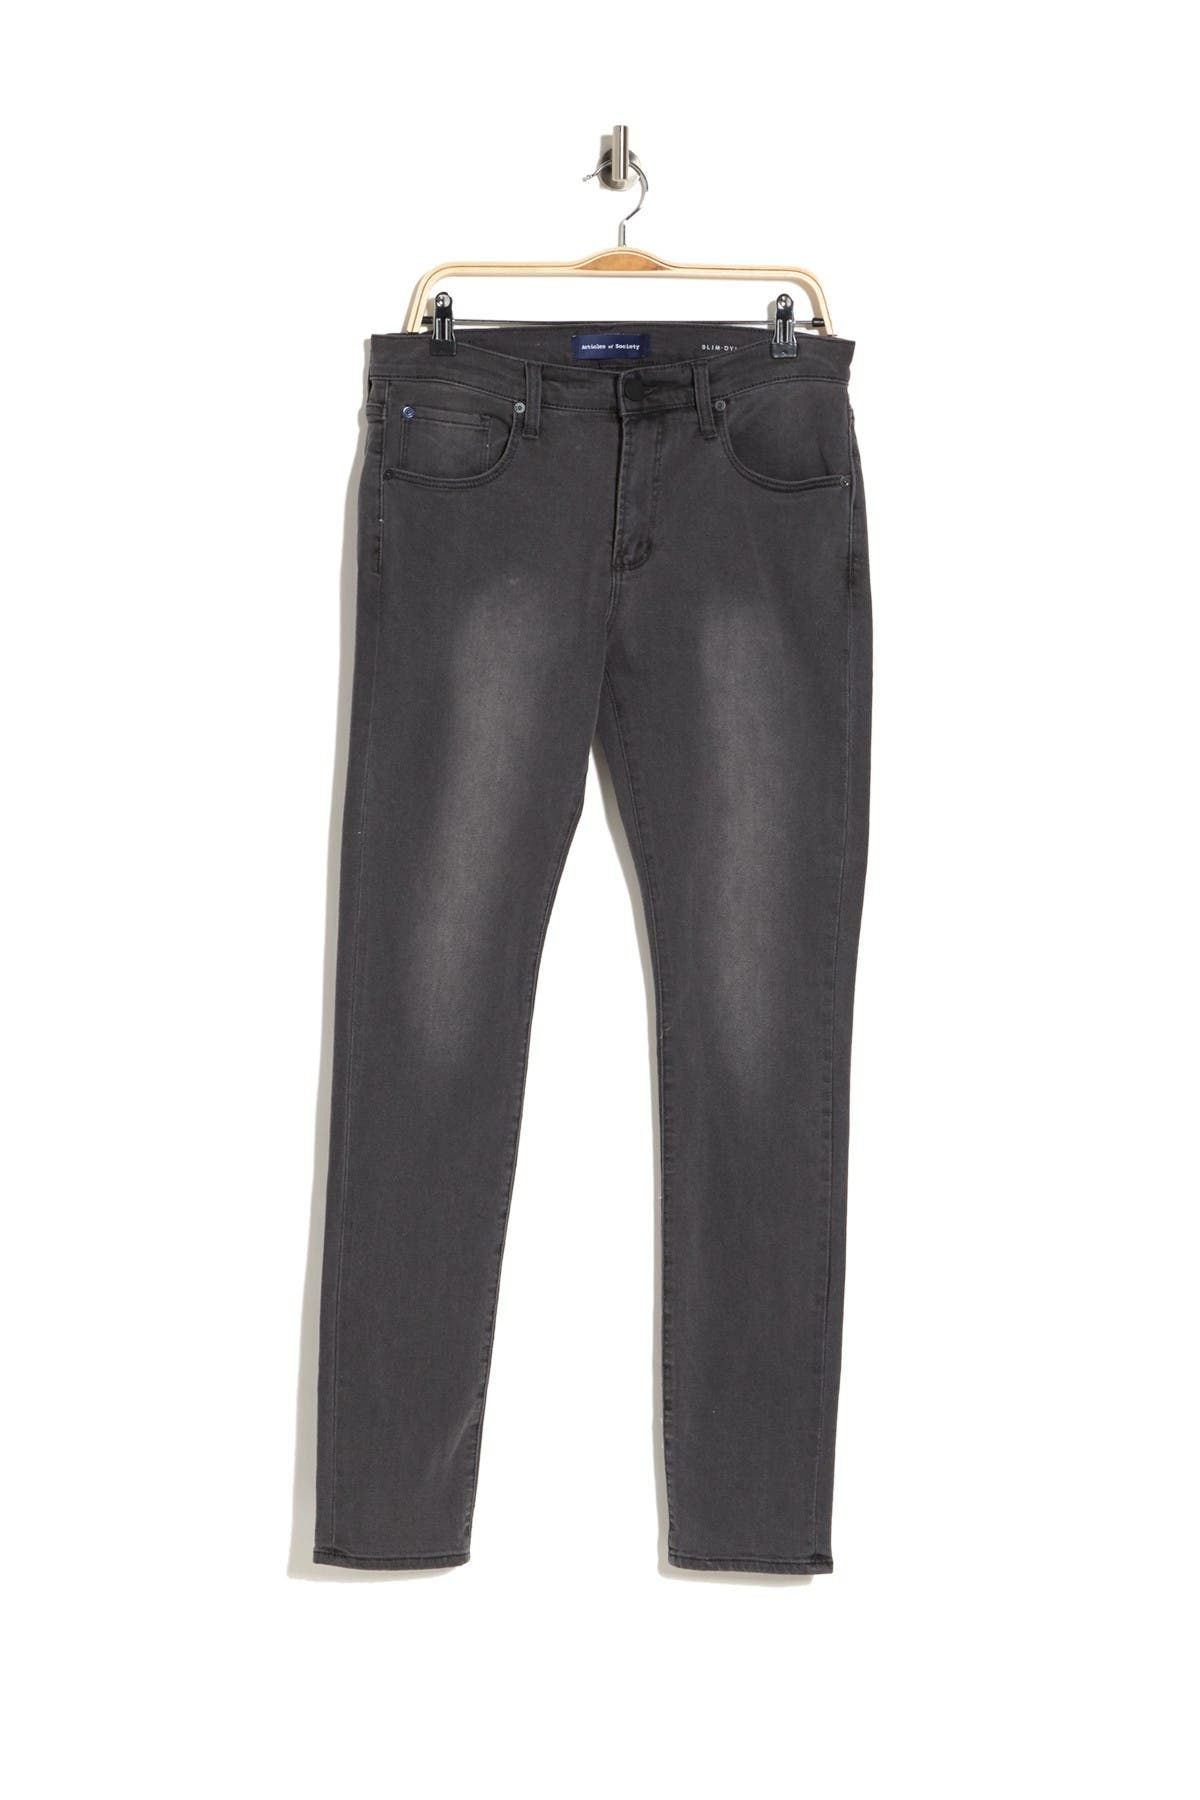 Image of Articles of Society Dylan Slim Fit Skinny Jeans